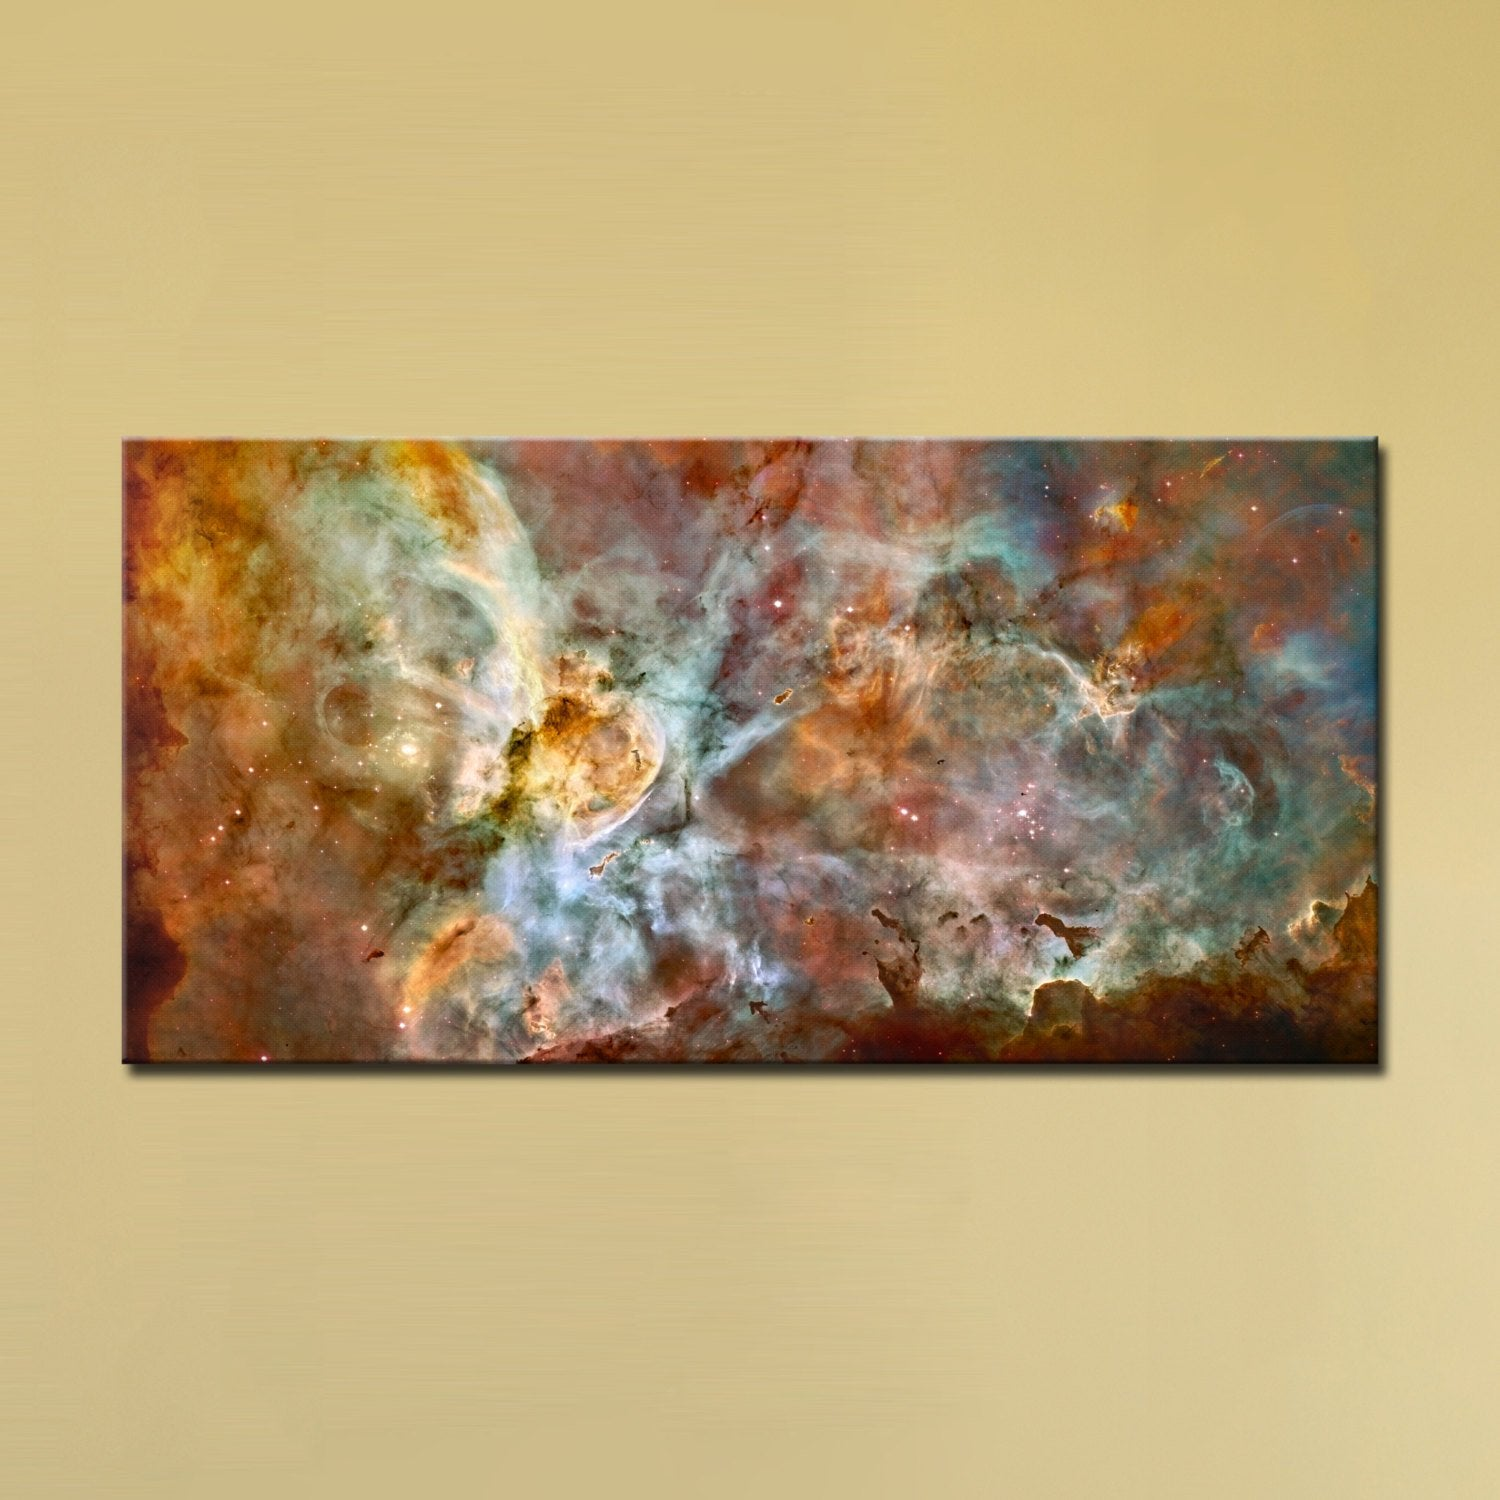 The Carina Nebula, Star Birth in the Extreme (Color) (12″ x 24″) – Canvas Wrap Print